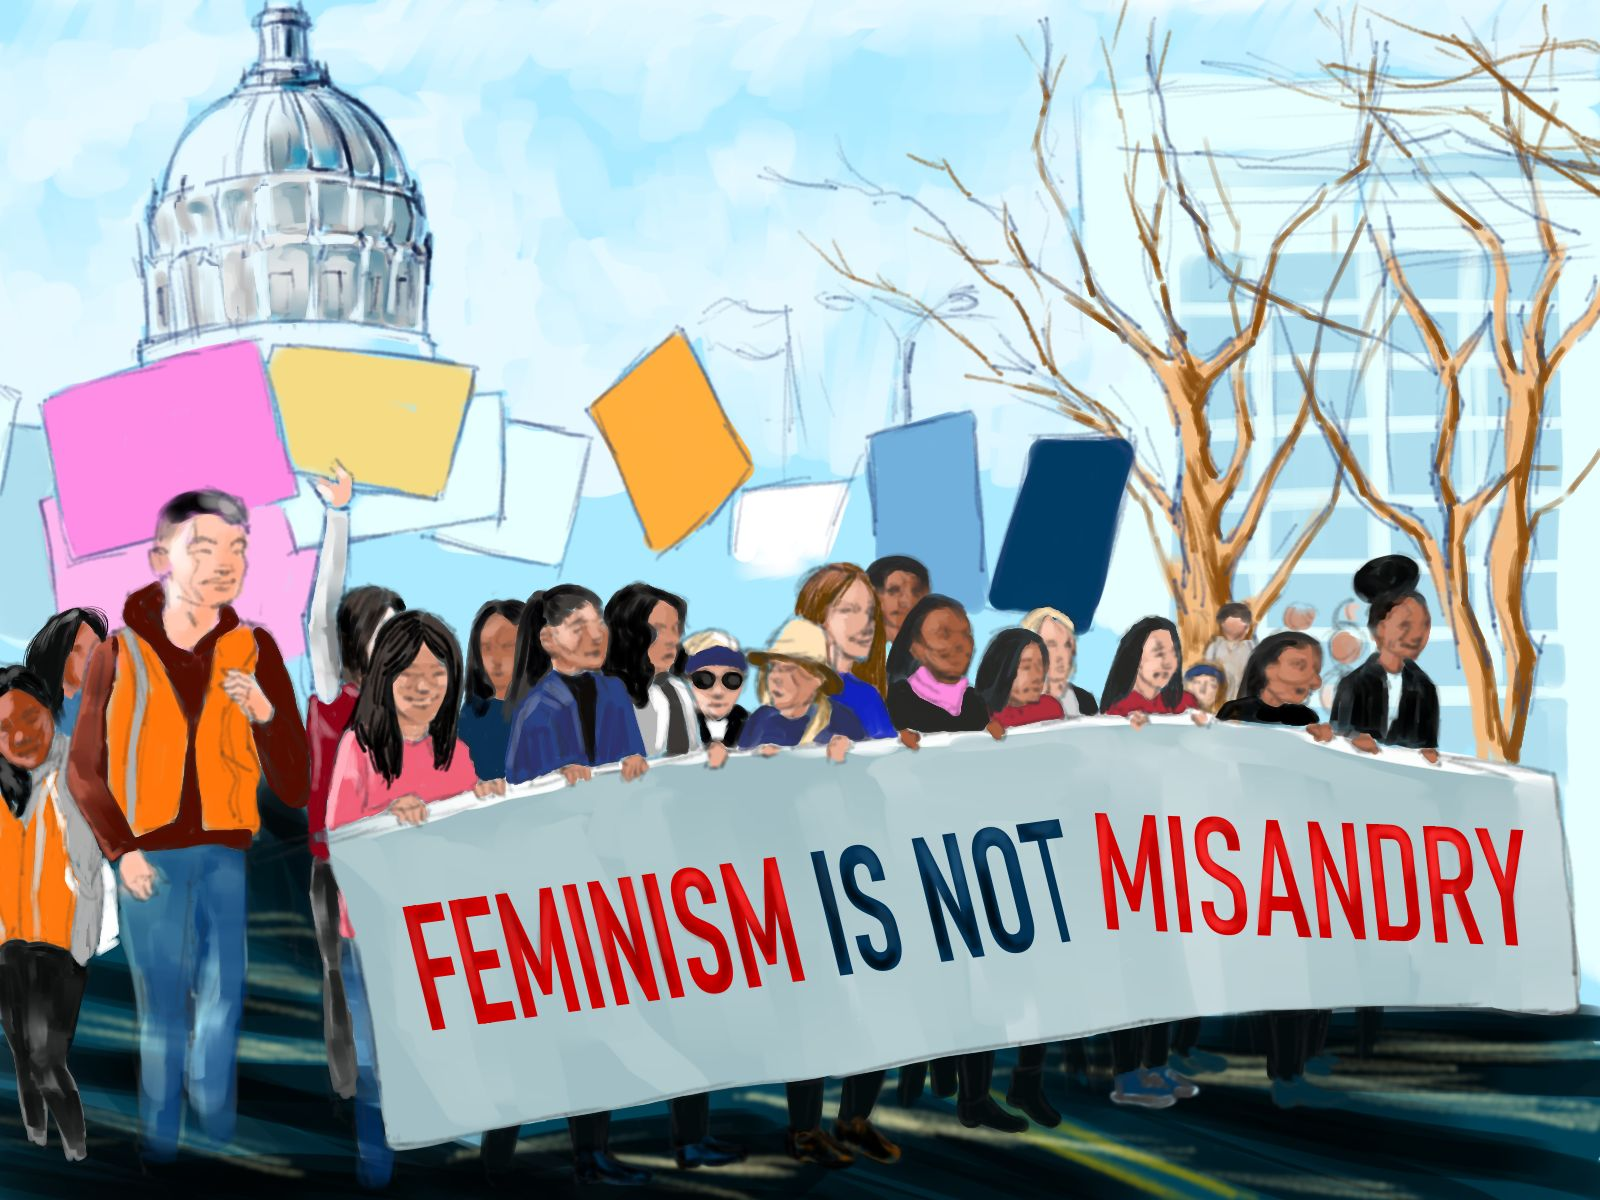 OPINION: Feminism does not mean man-hating   The Student Life